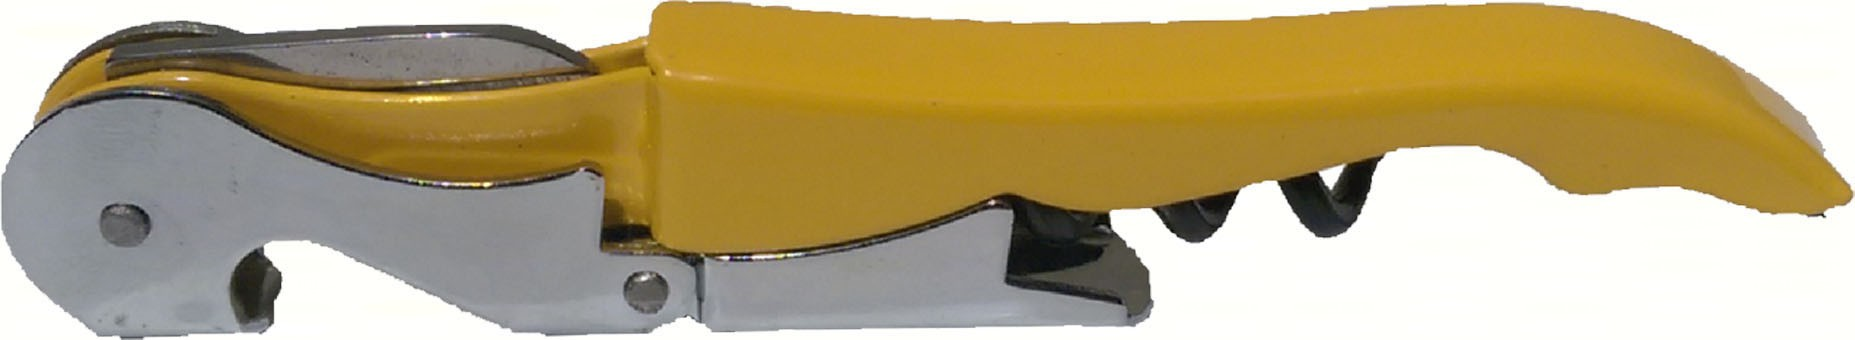 Yellow Unprinted Corkscrew